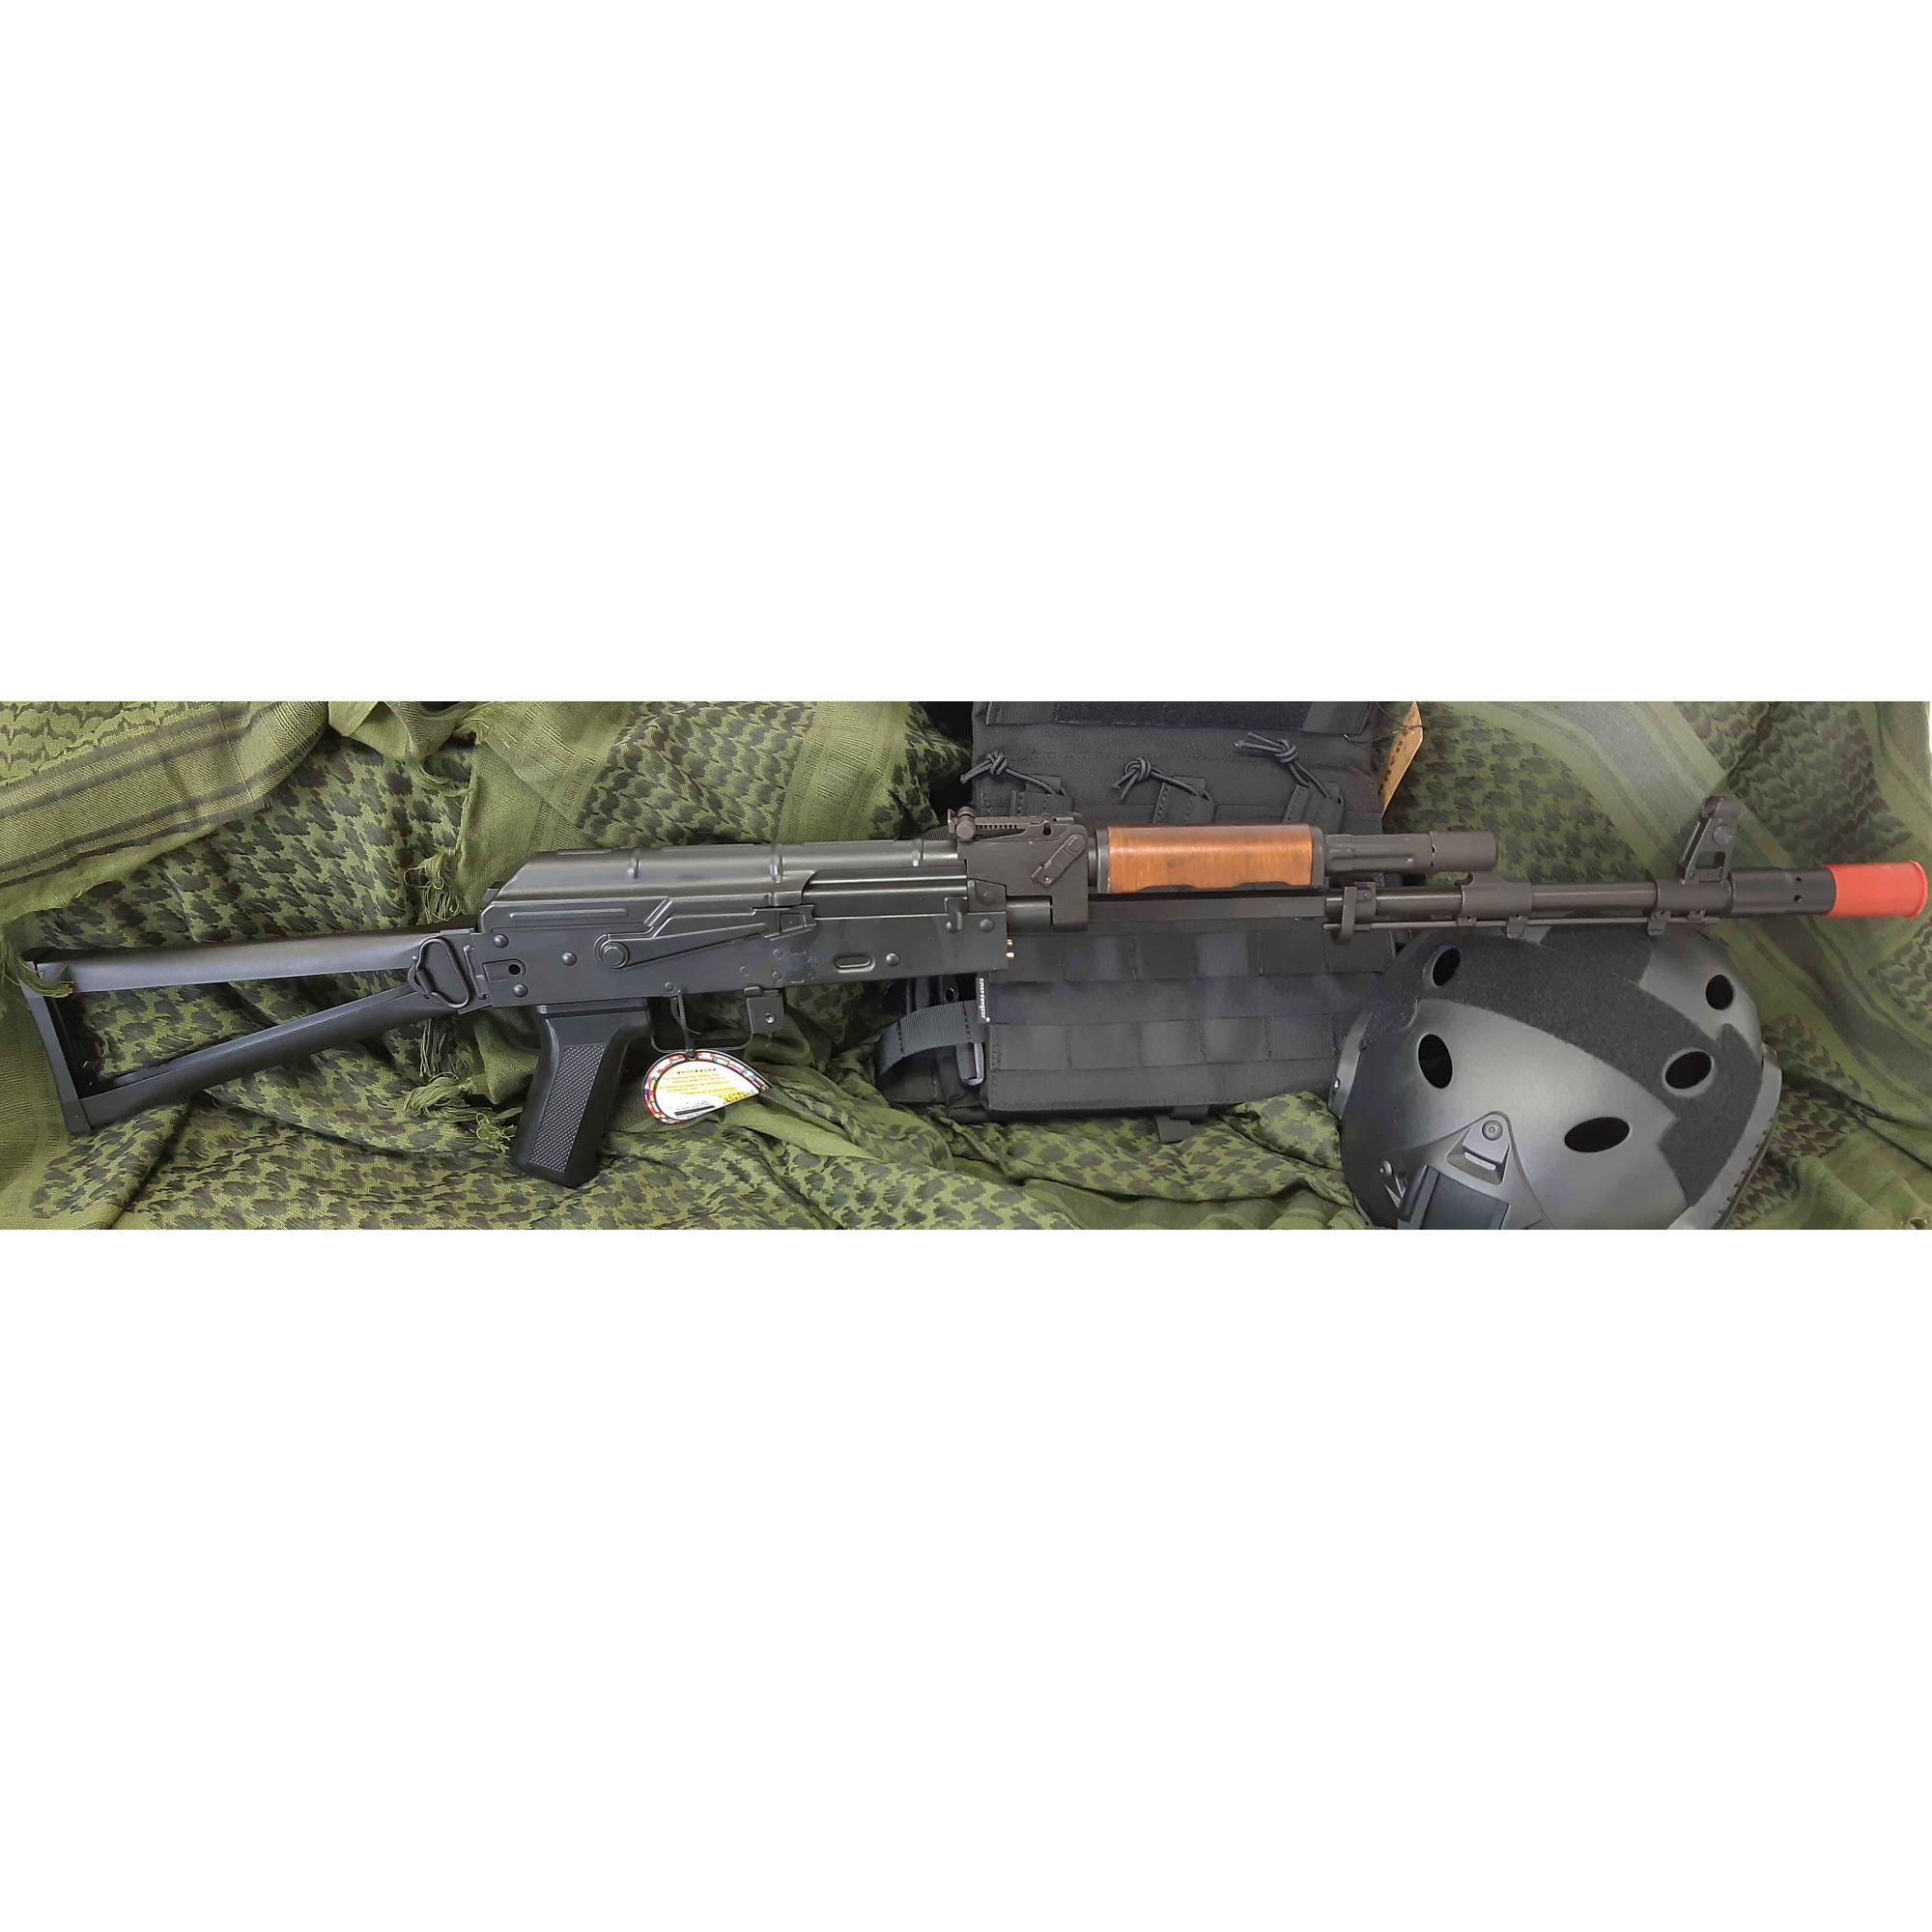 Rifle Airsoft AEG AK GK74 - G&G Full Metal - Calibre 6 mm